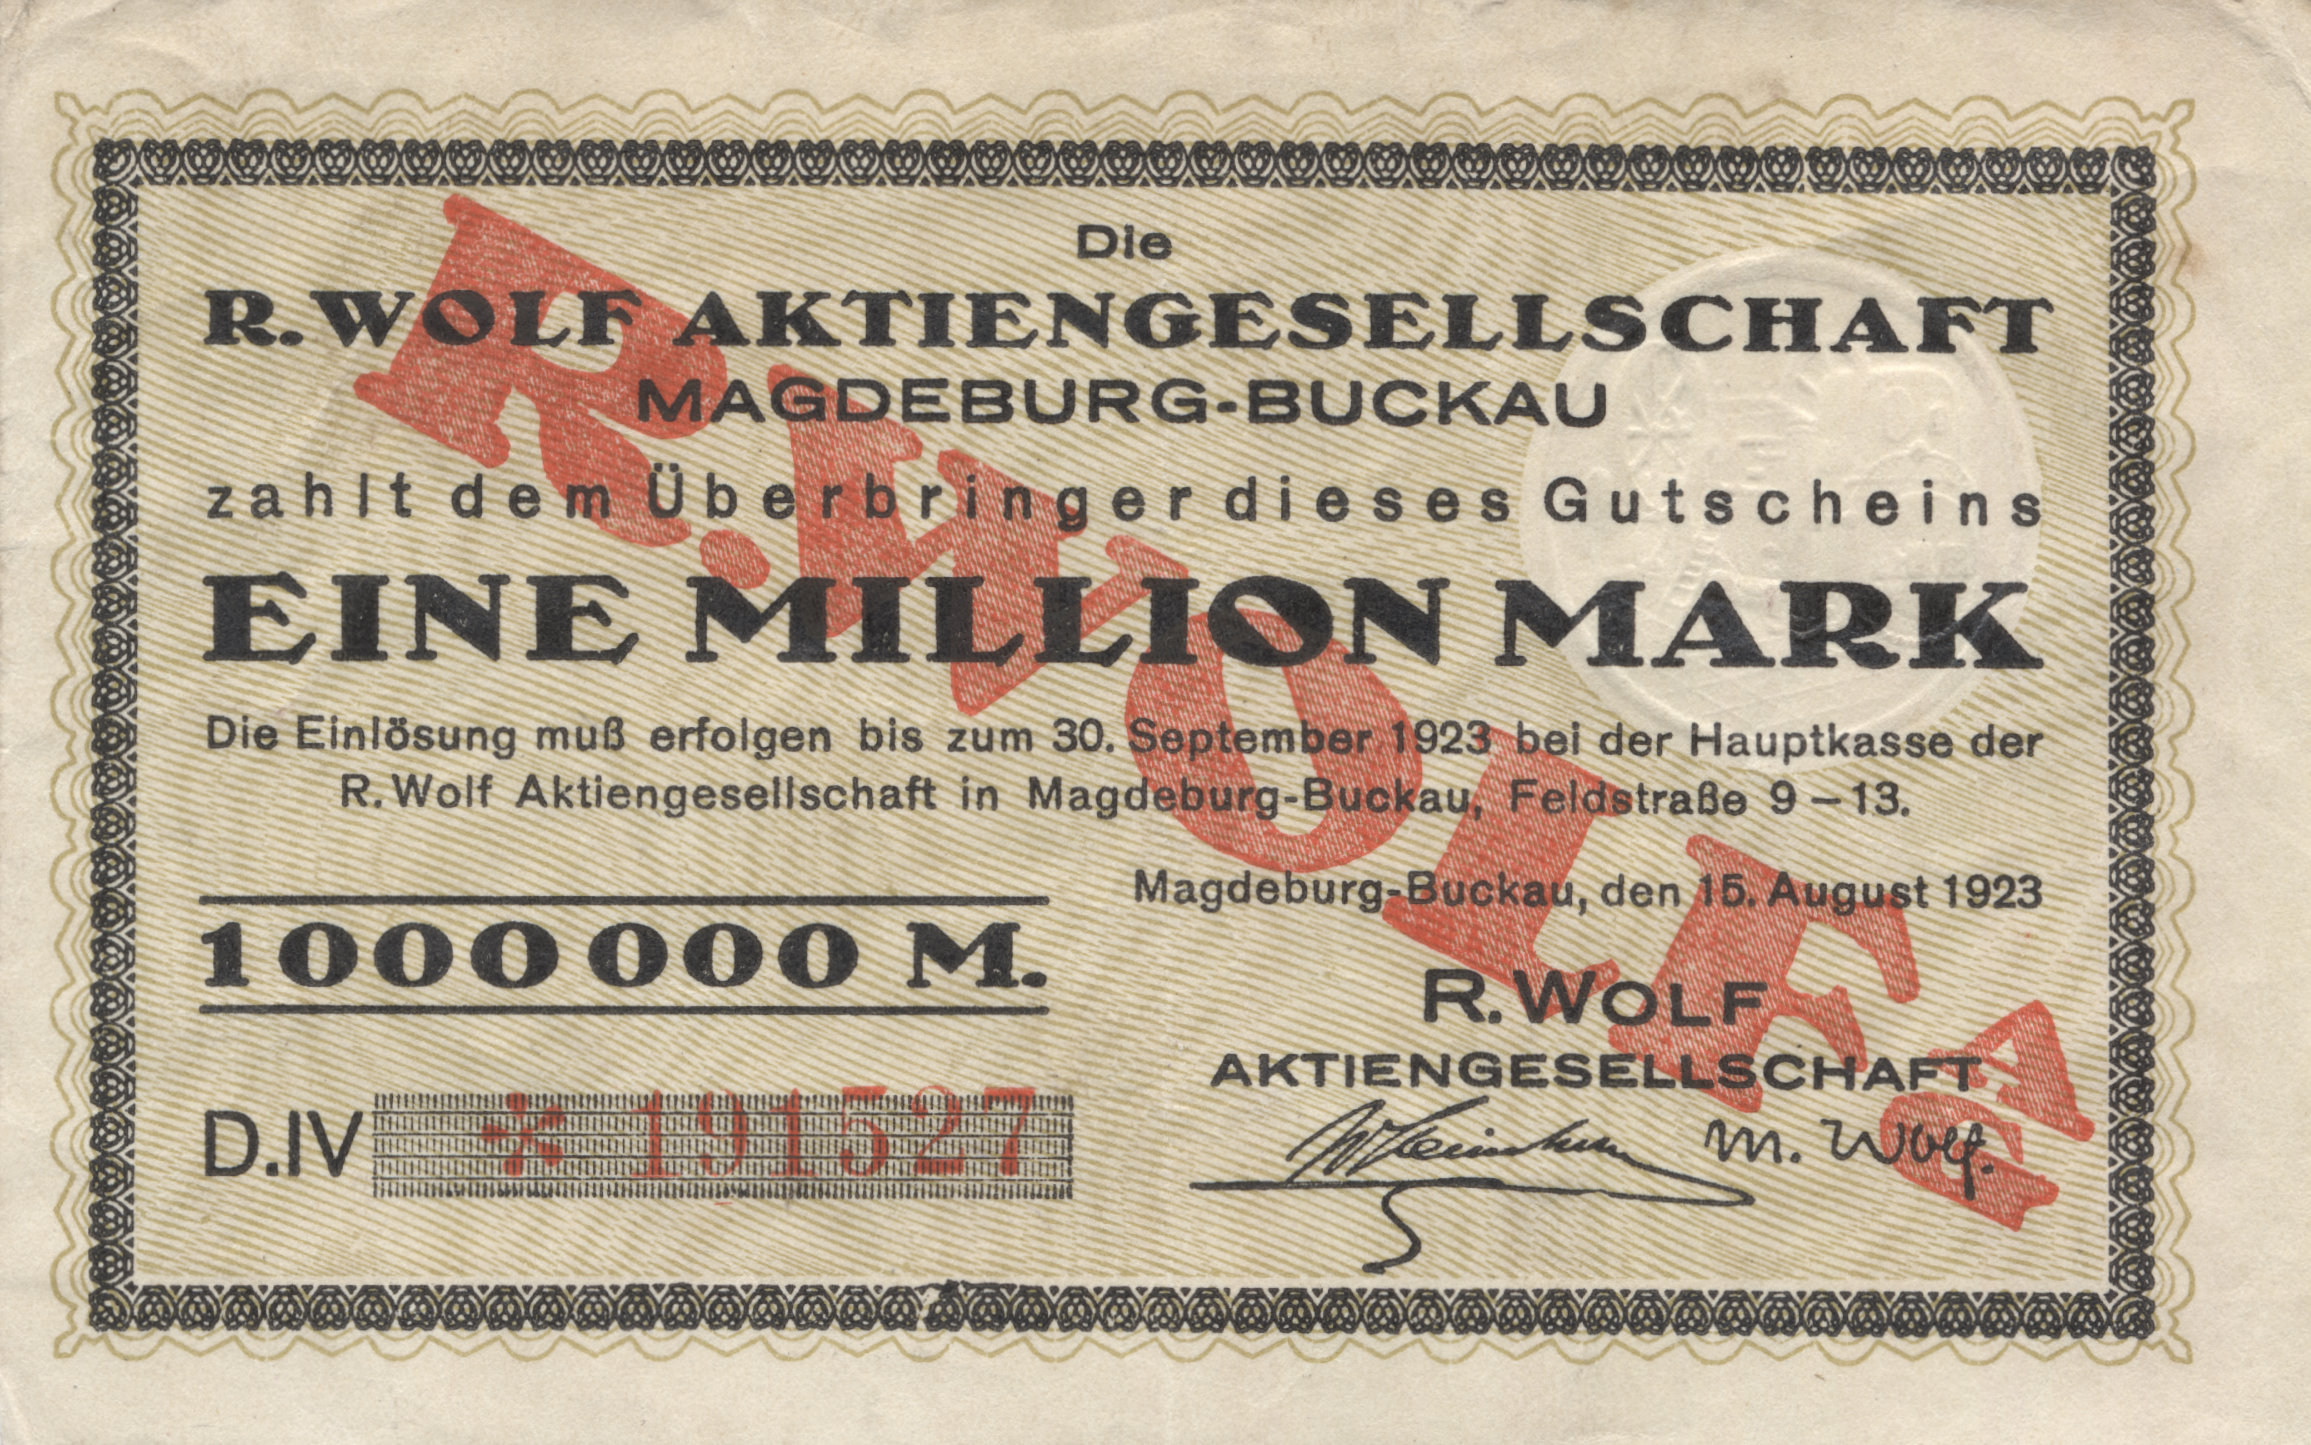 Gutschein über 1 Million Mark 1923 - Quelle: Wikimedia